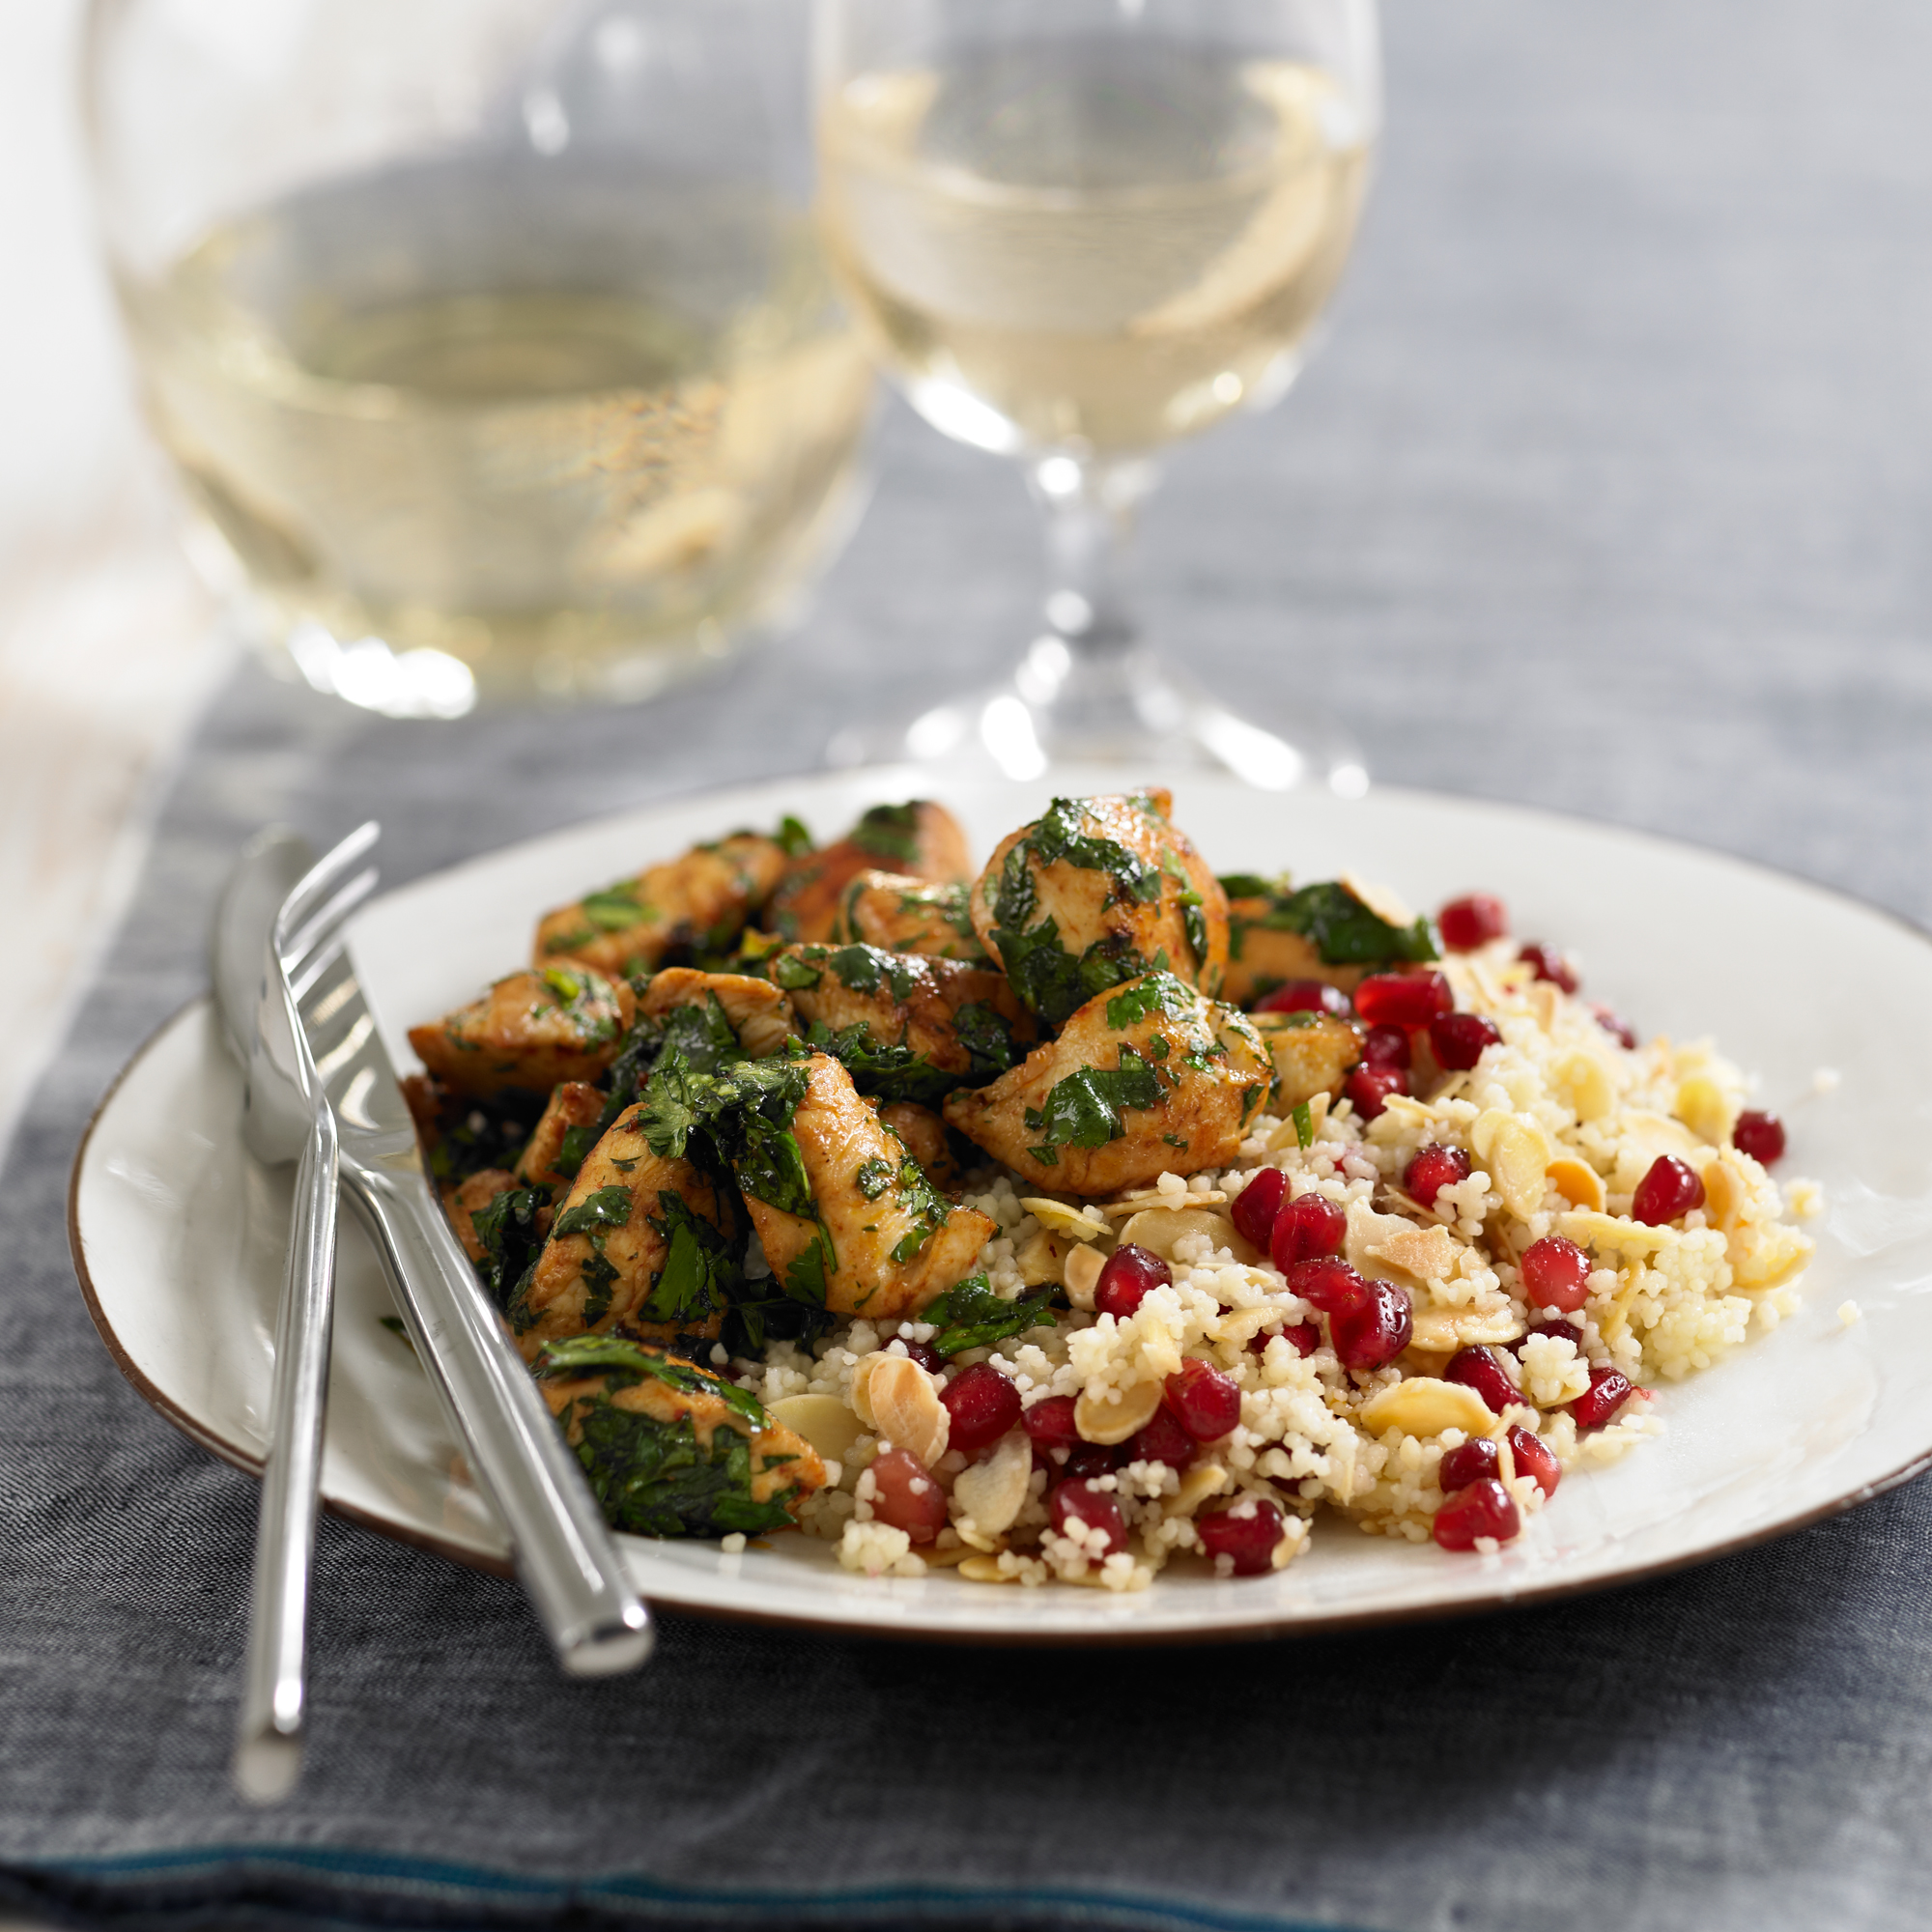 Pomegranate Chicken With Almond Couscous Recipe